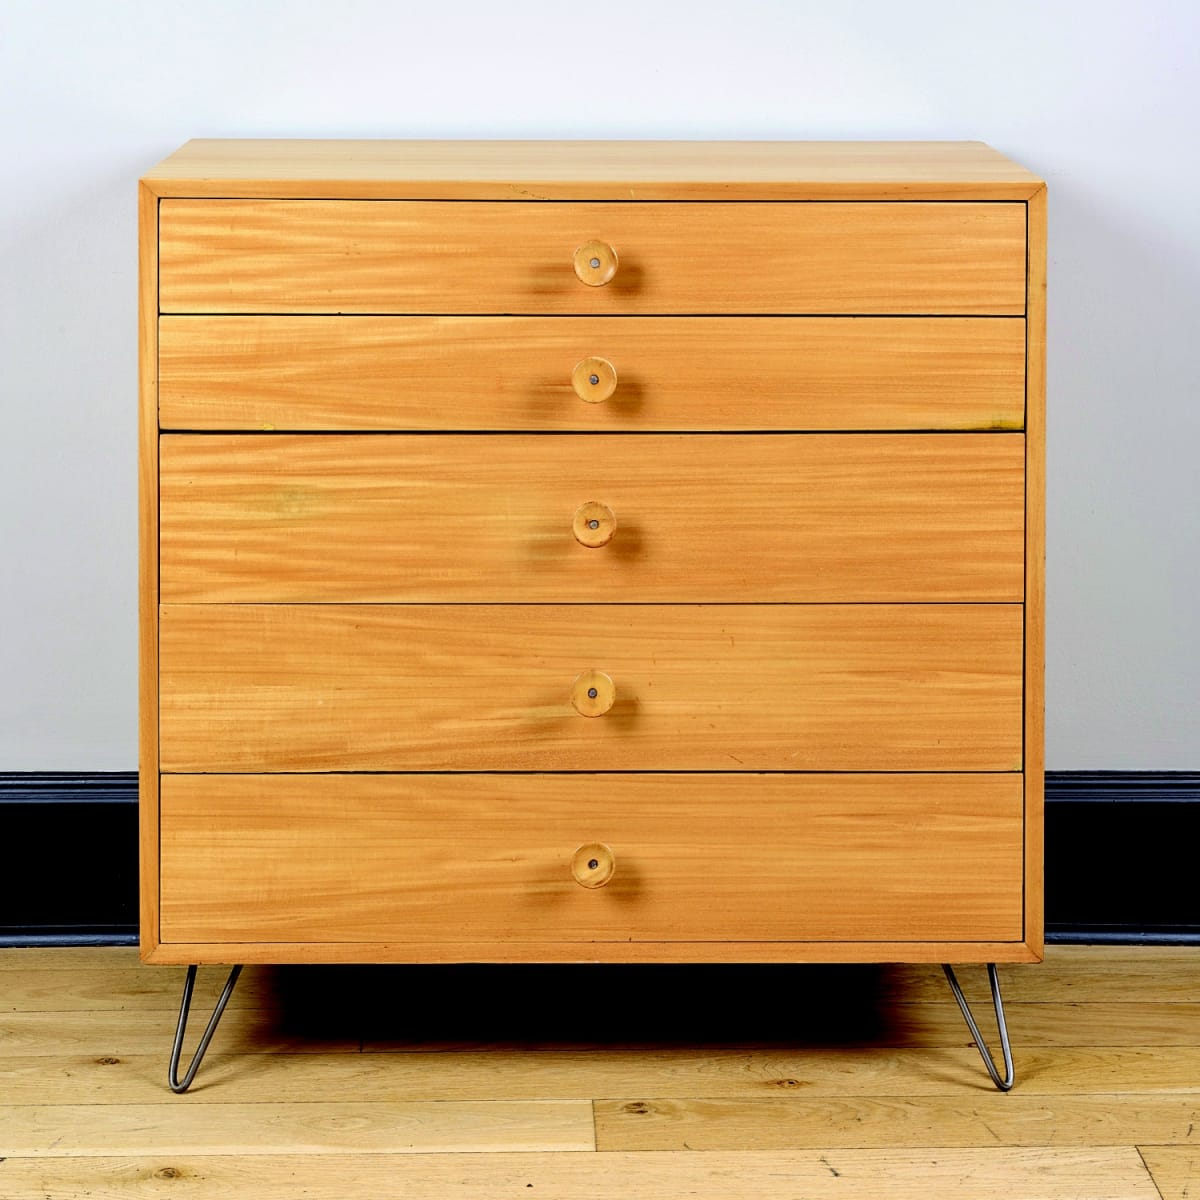 George Nelson 'Cup Cake' chest of drawers combed oak with walnut inlay 18 1/2 x 40 x 40 inches